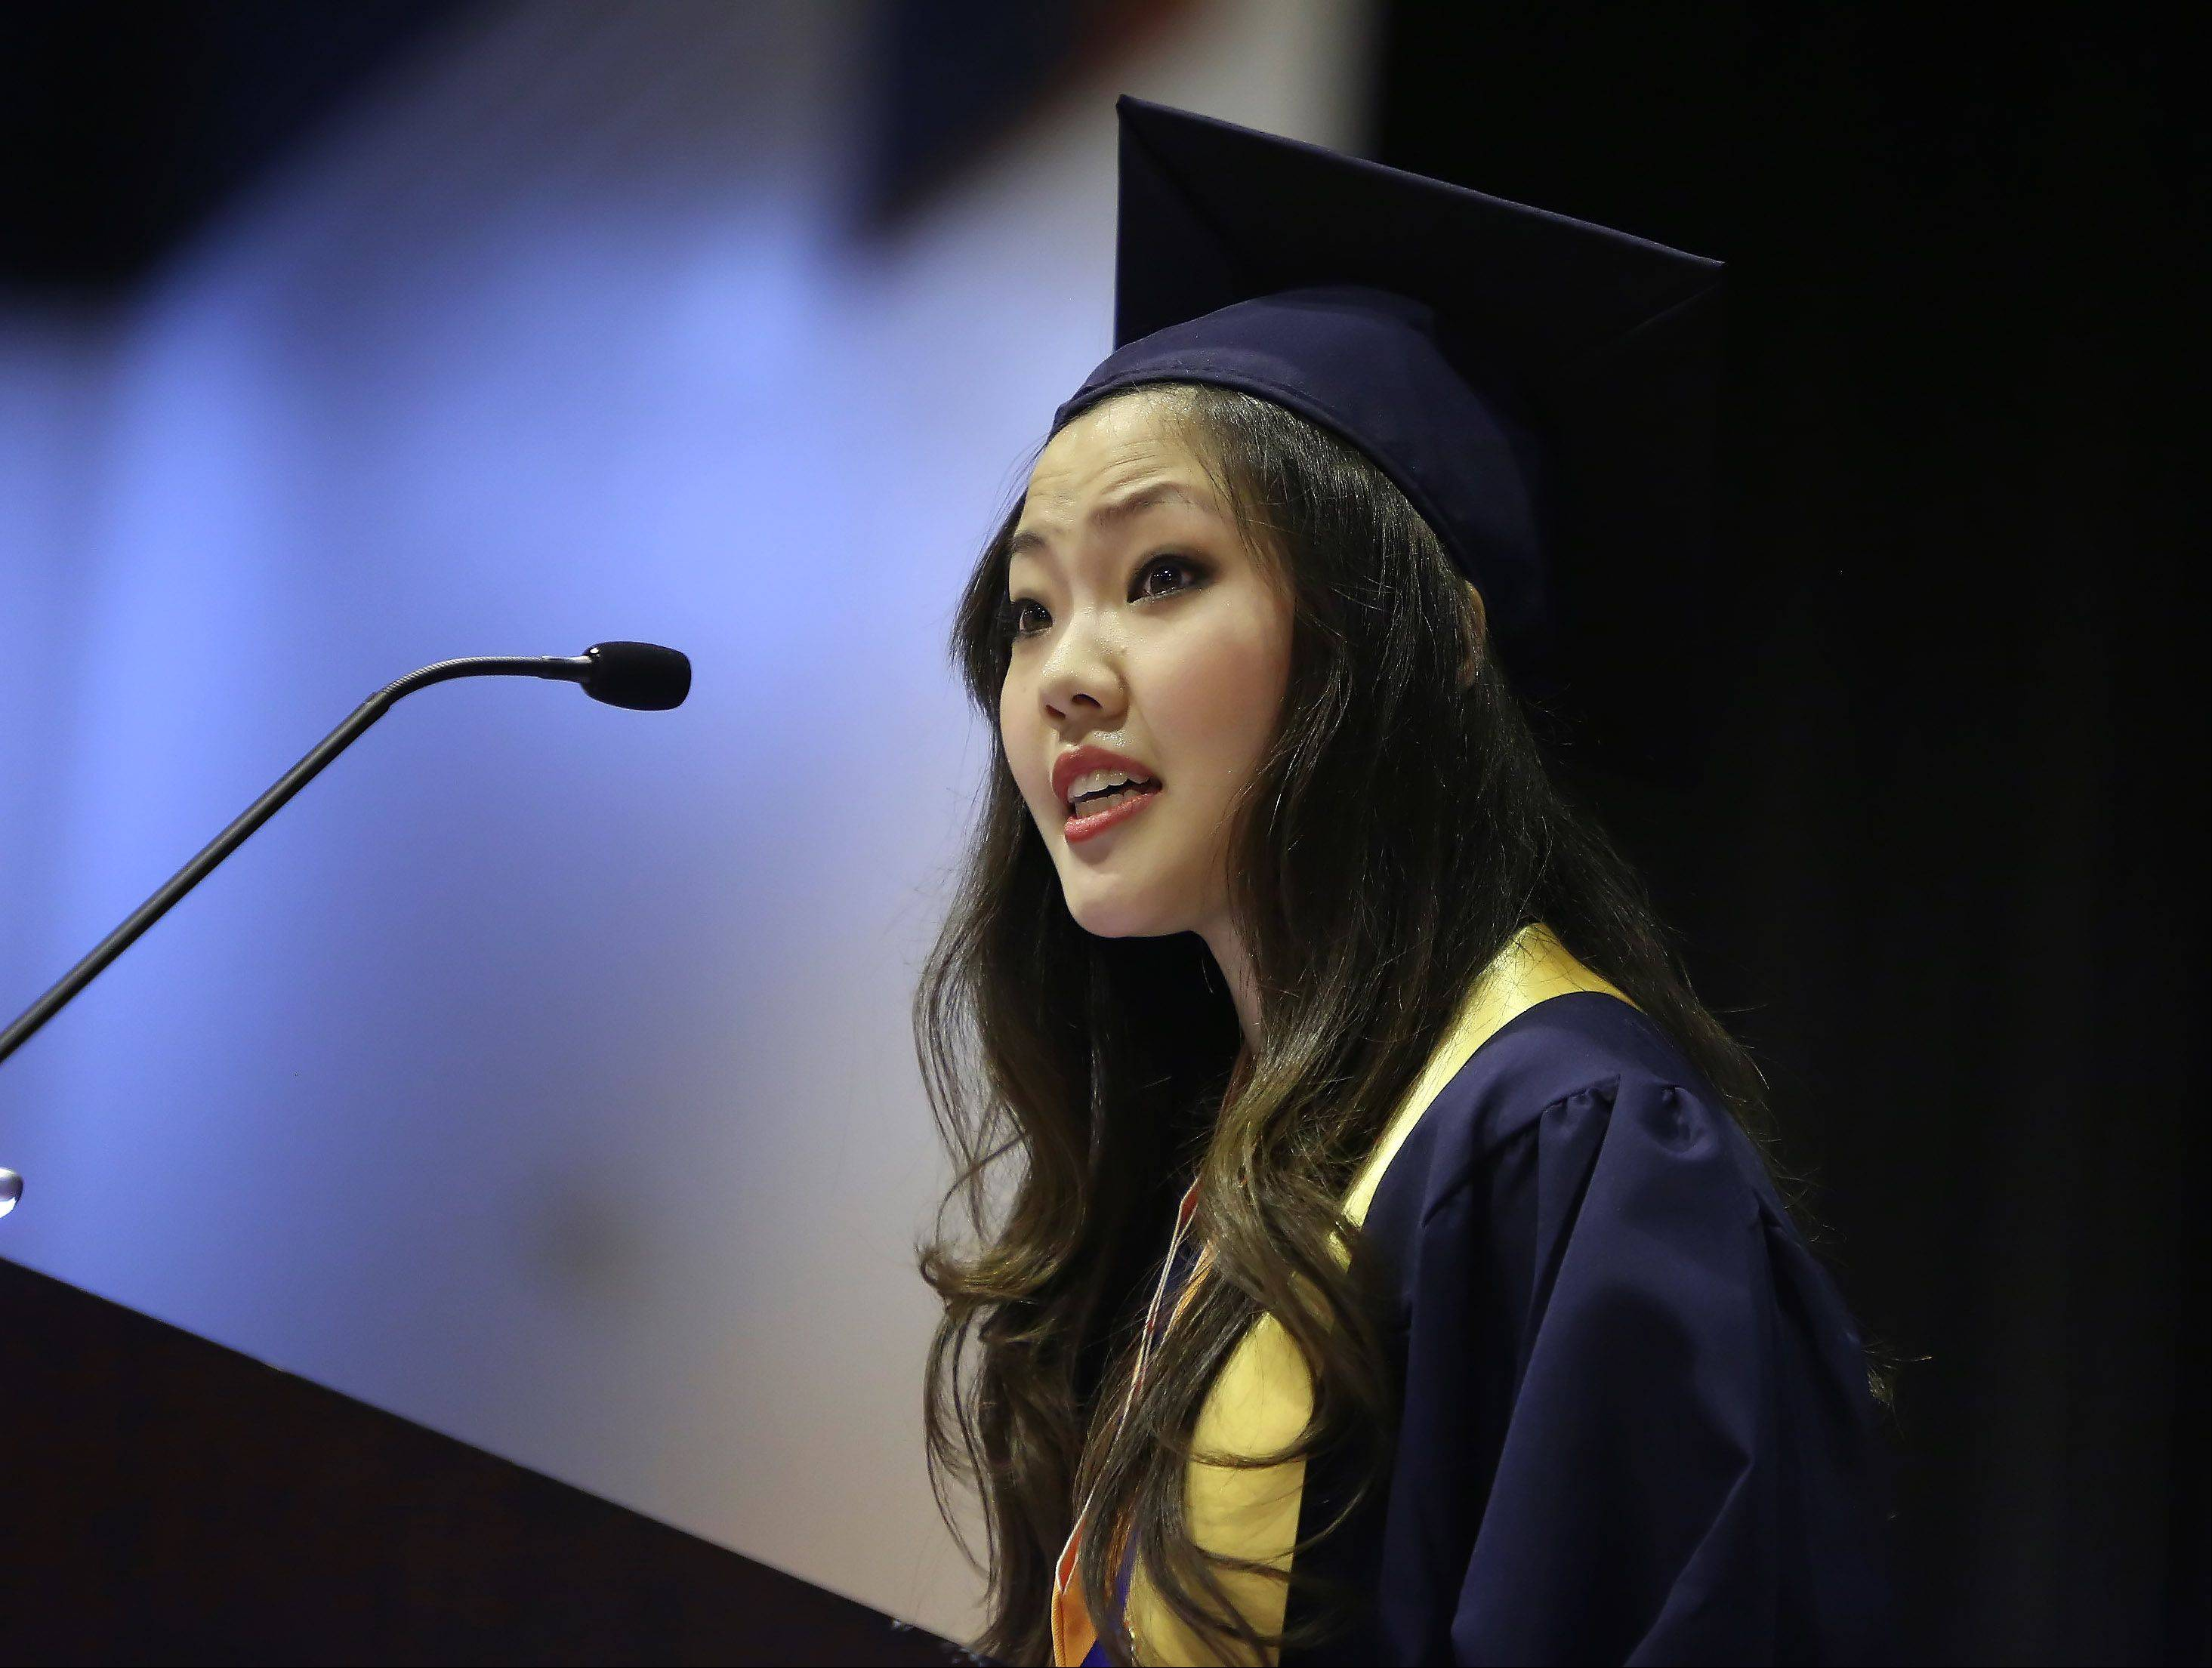 Student council president Hanah Chang gives a speech during the Buffalo Grove High School graduation on Sunday, June 2nd, at the school. There were 507 graduating seniors who participated in commencement exercises.